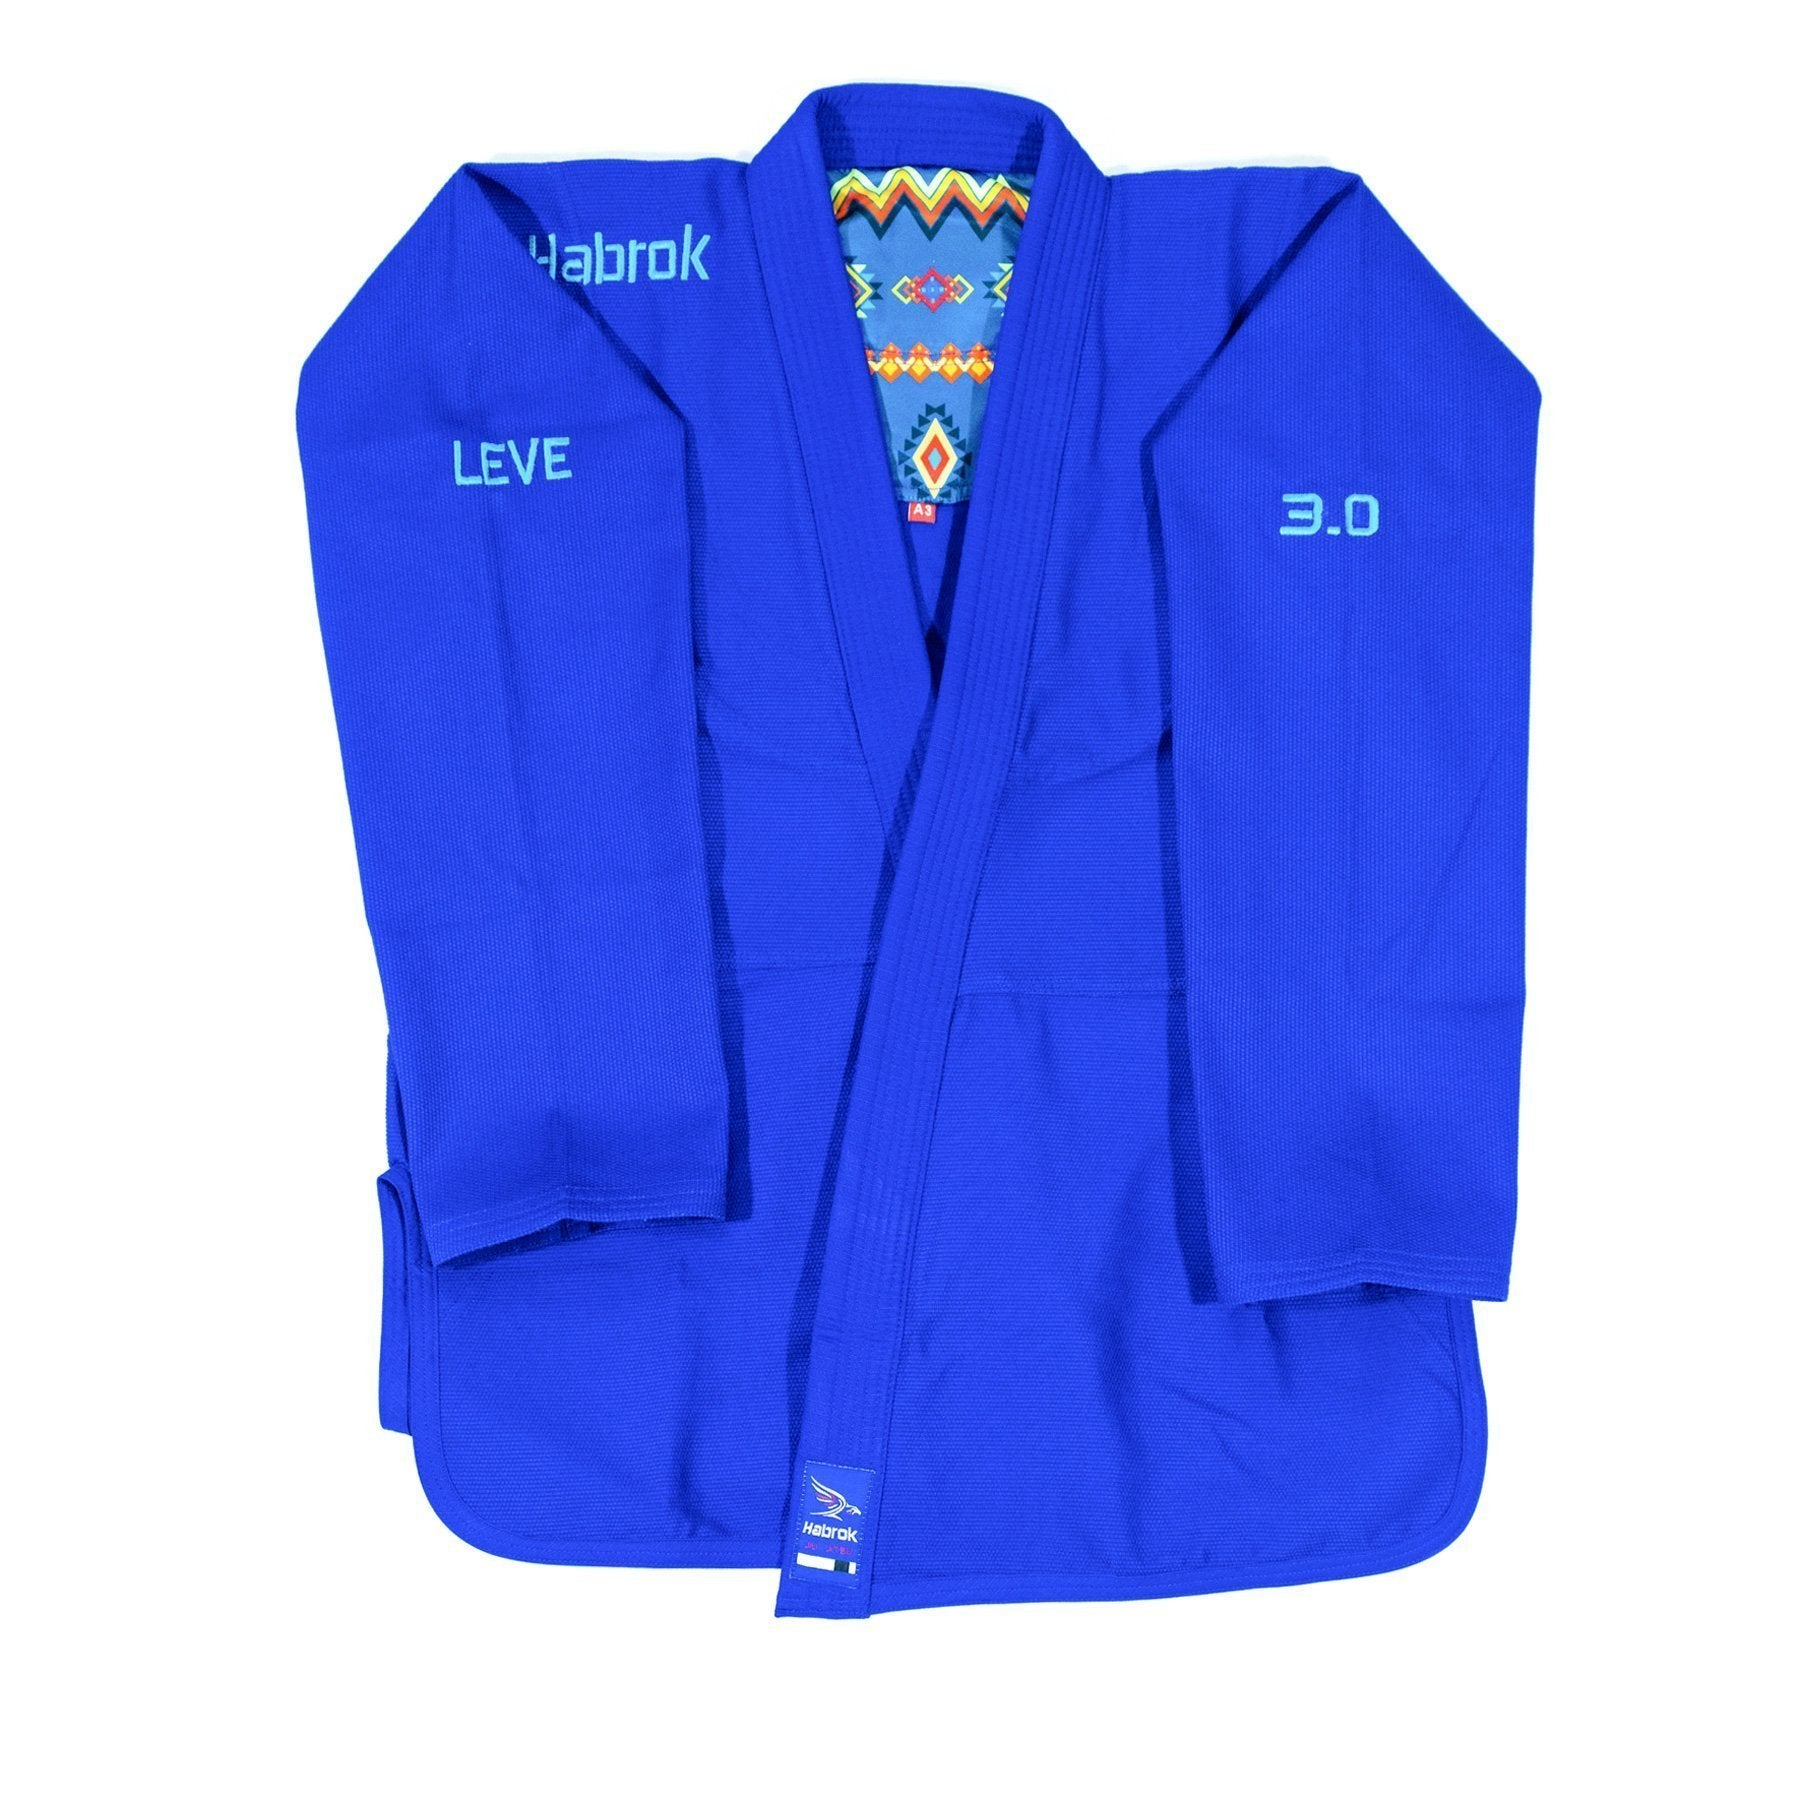 Leve 3.0 | Premium Ultra Light | BJJ GI | Youth | Blue